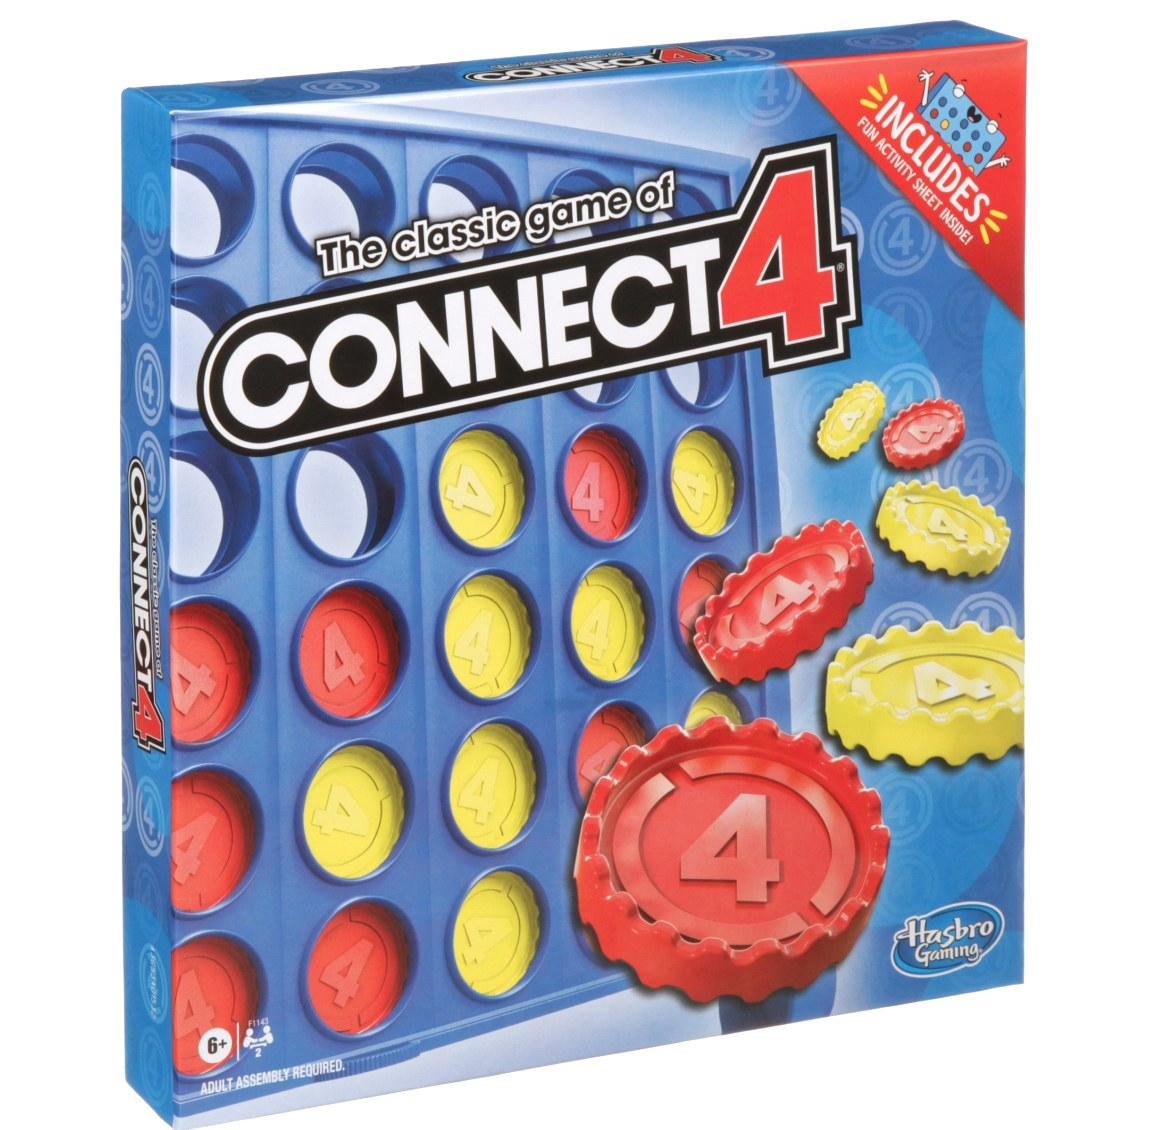 The game of Connect 4 in its original box